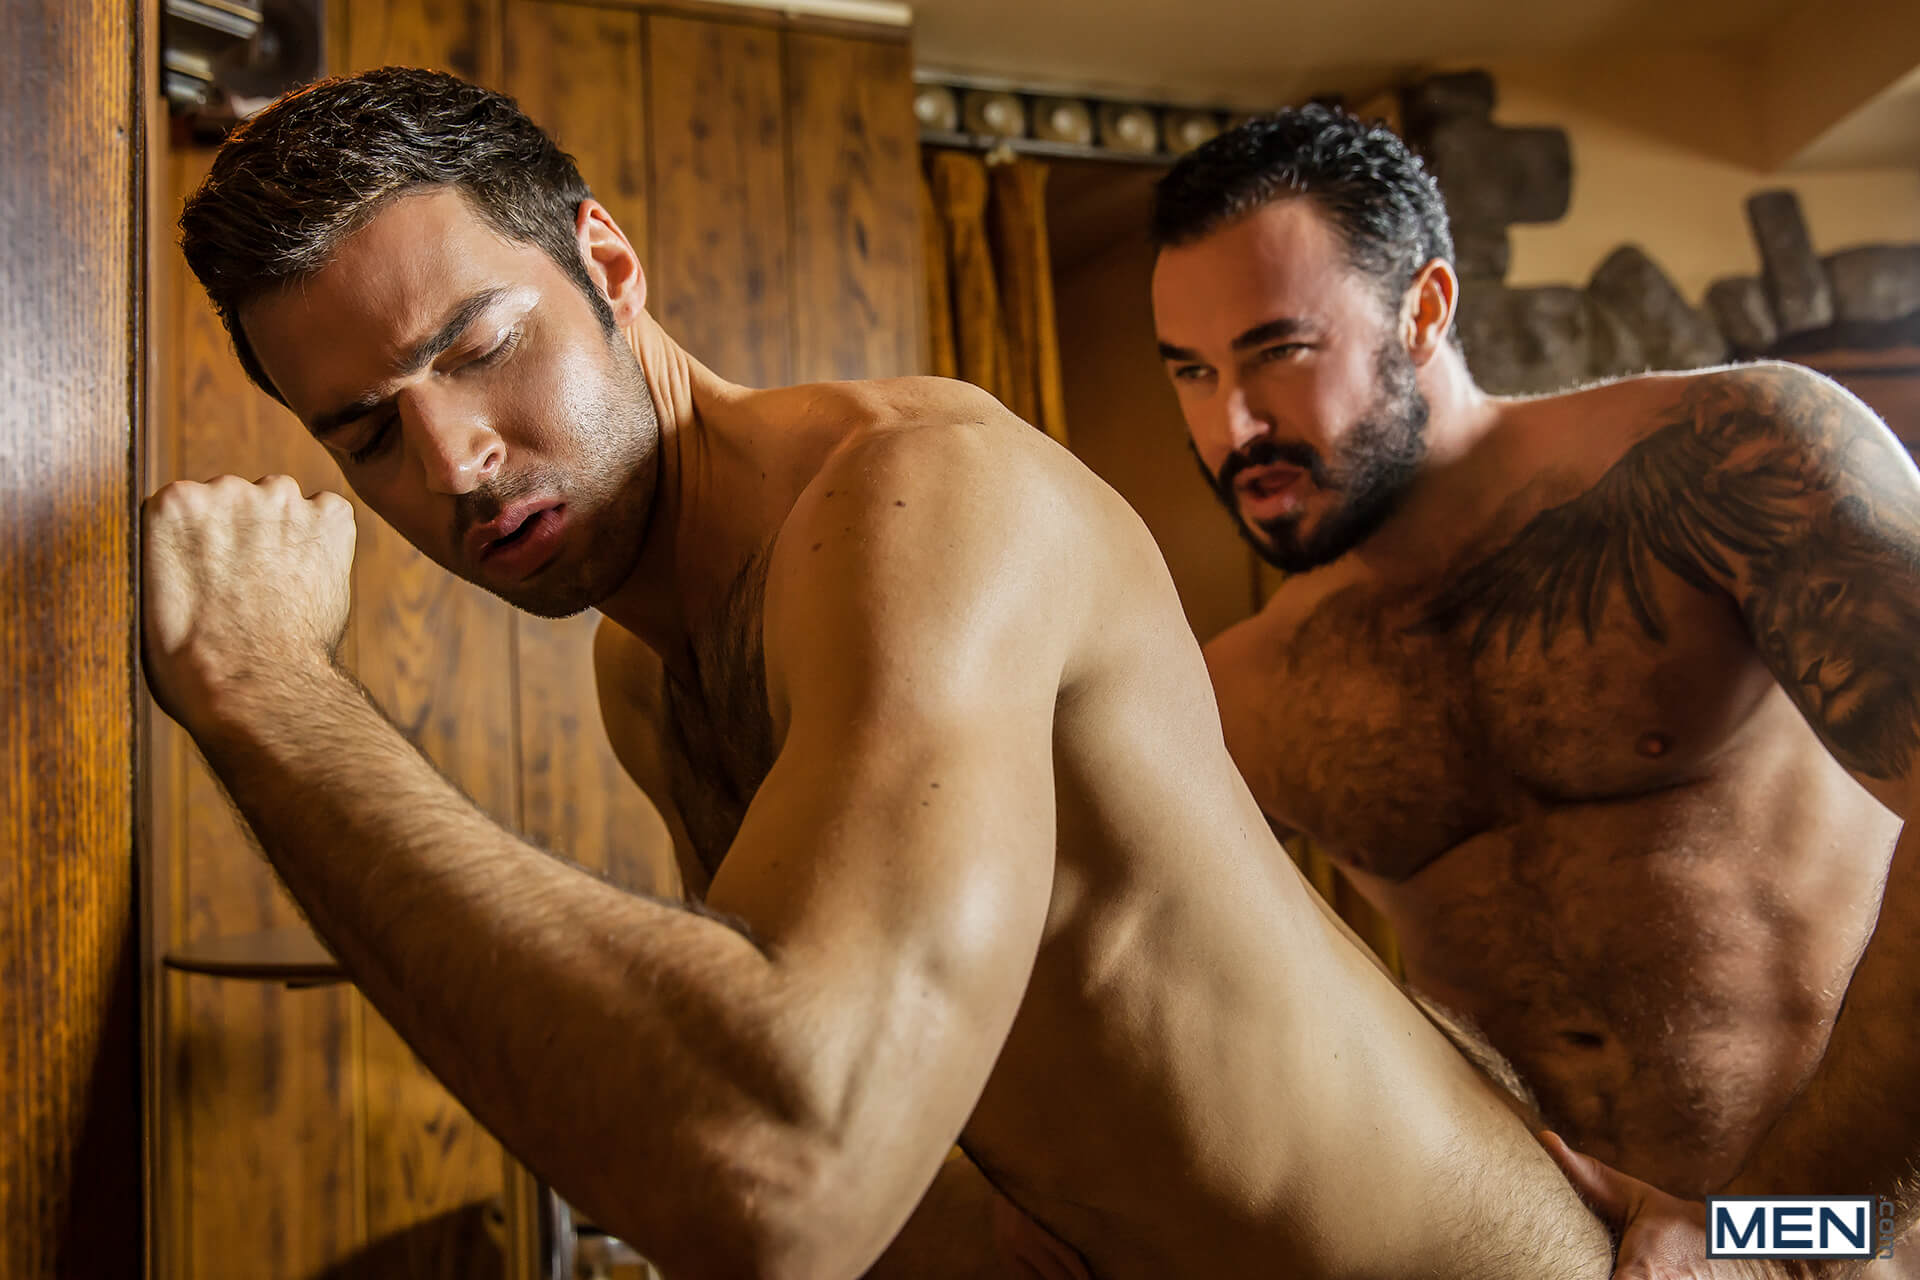 men str8 to gay language barrier part 2 dario beck jessy ares gay porn blog image 16